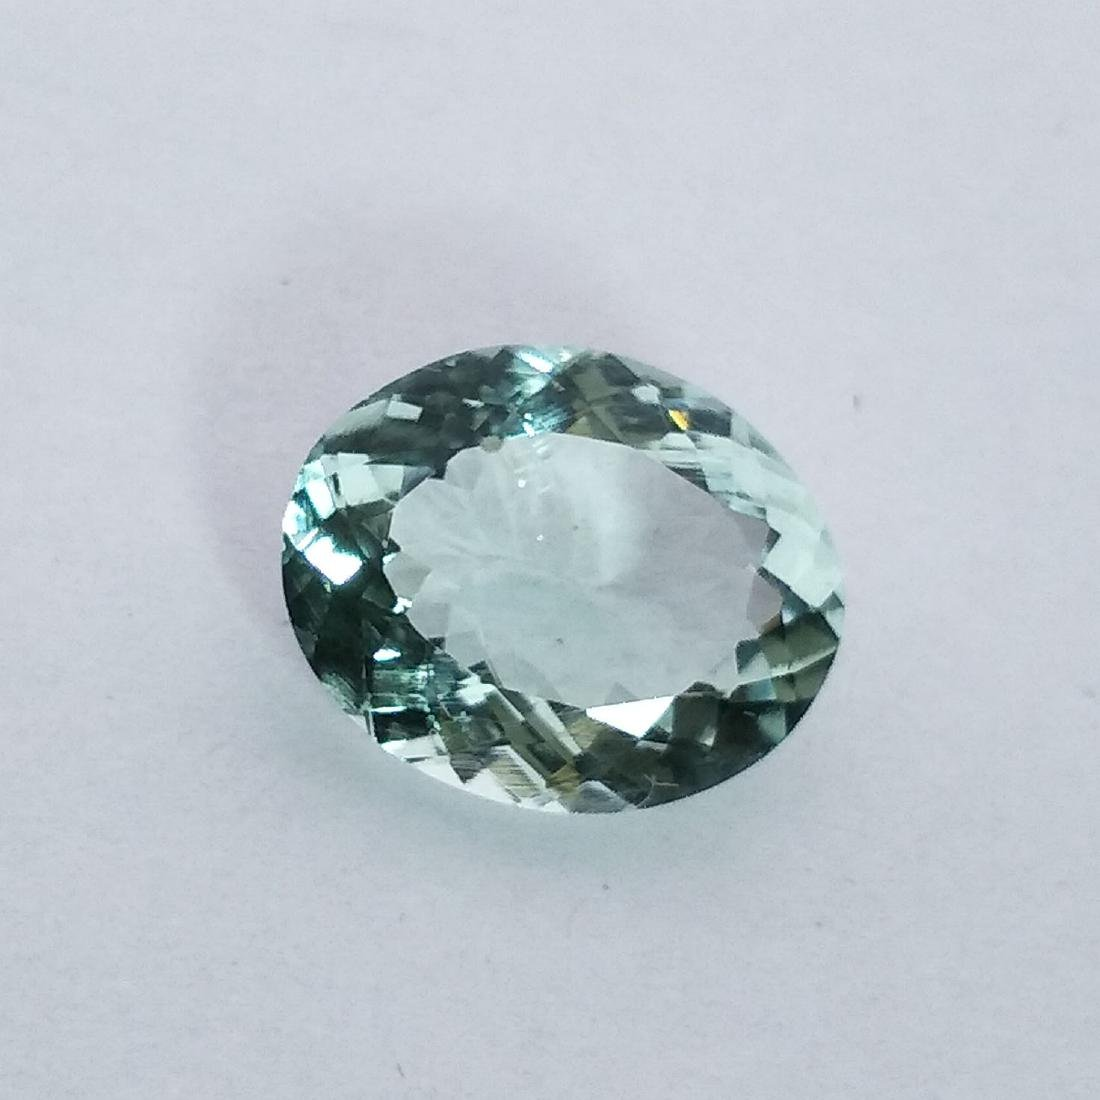 Aquamarine - 3.64 ct - 2